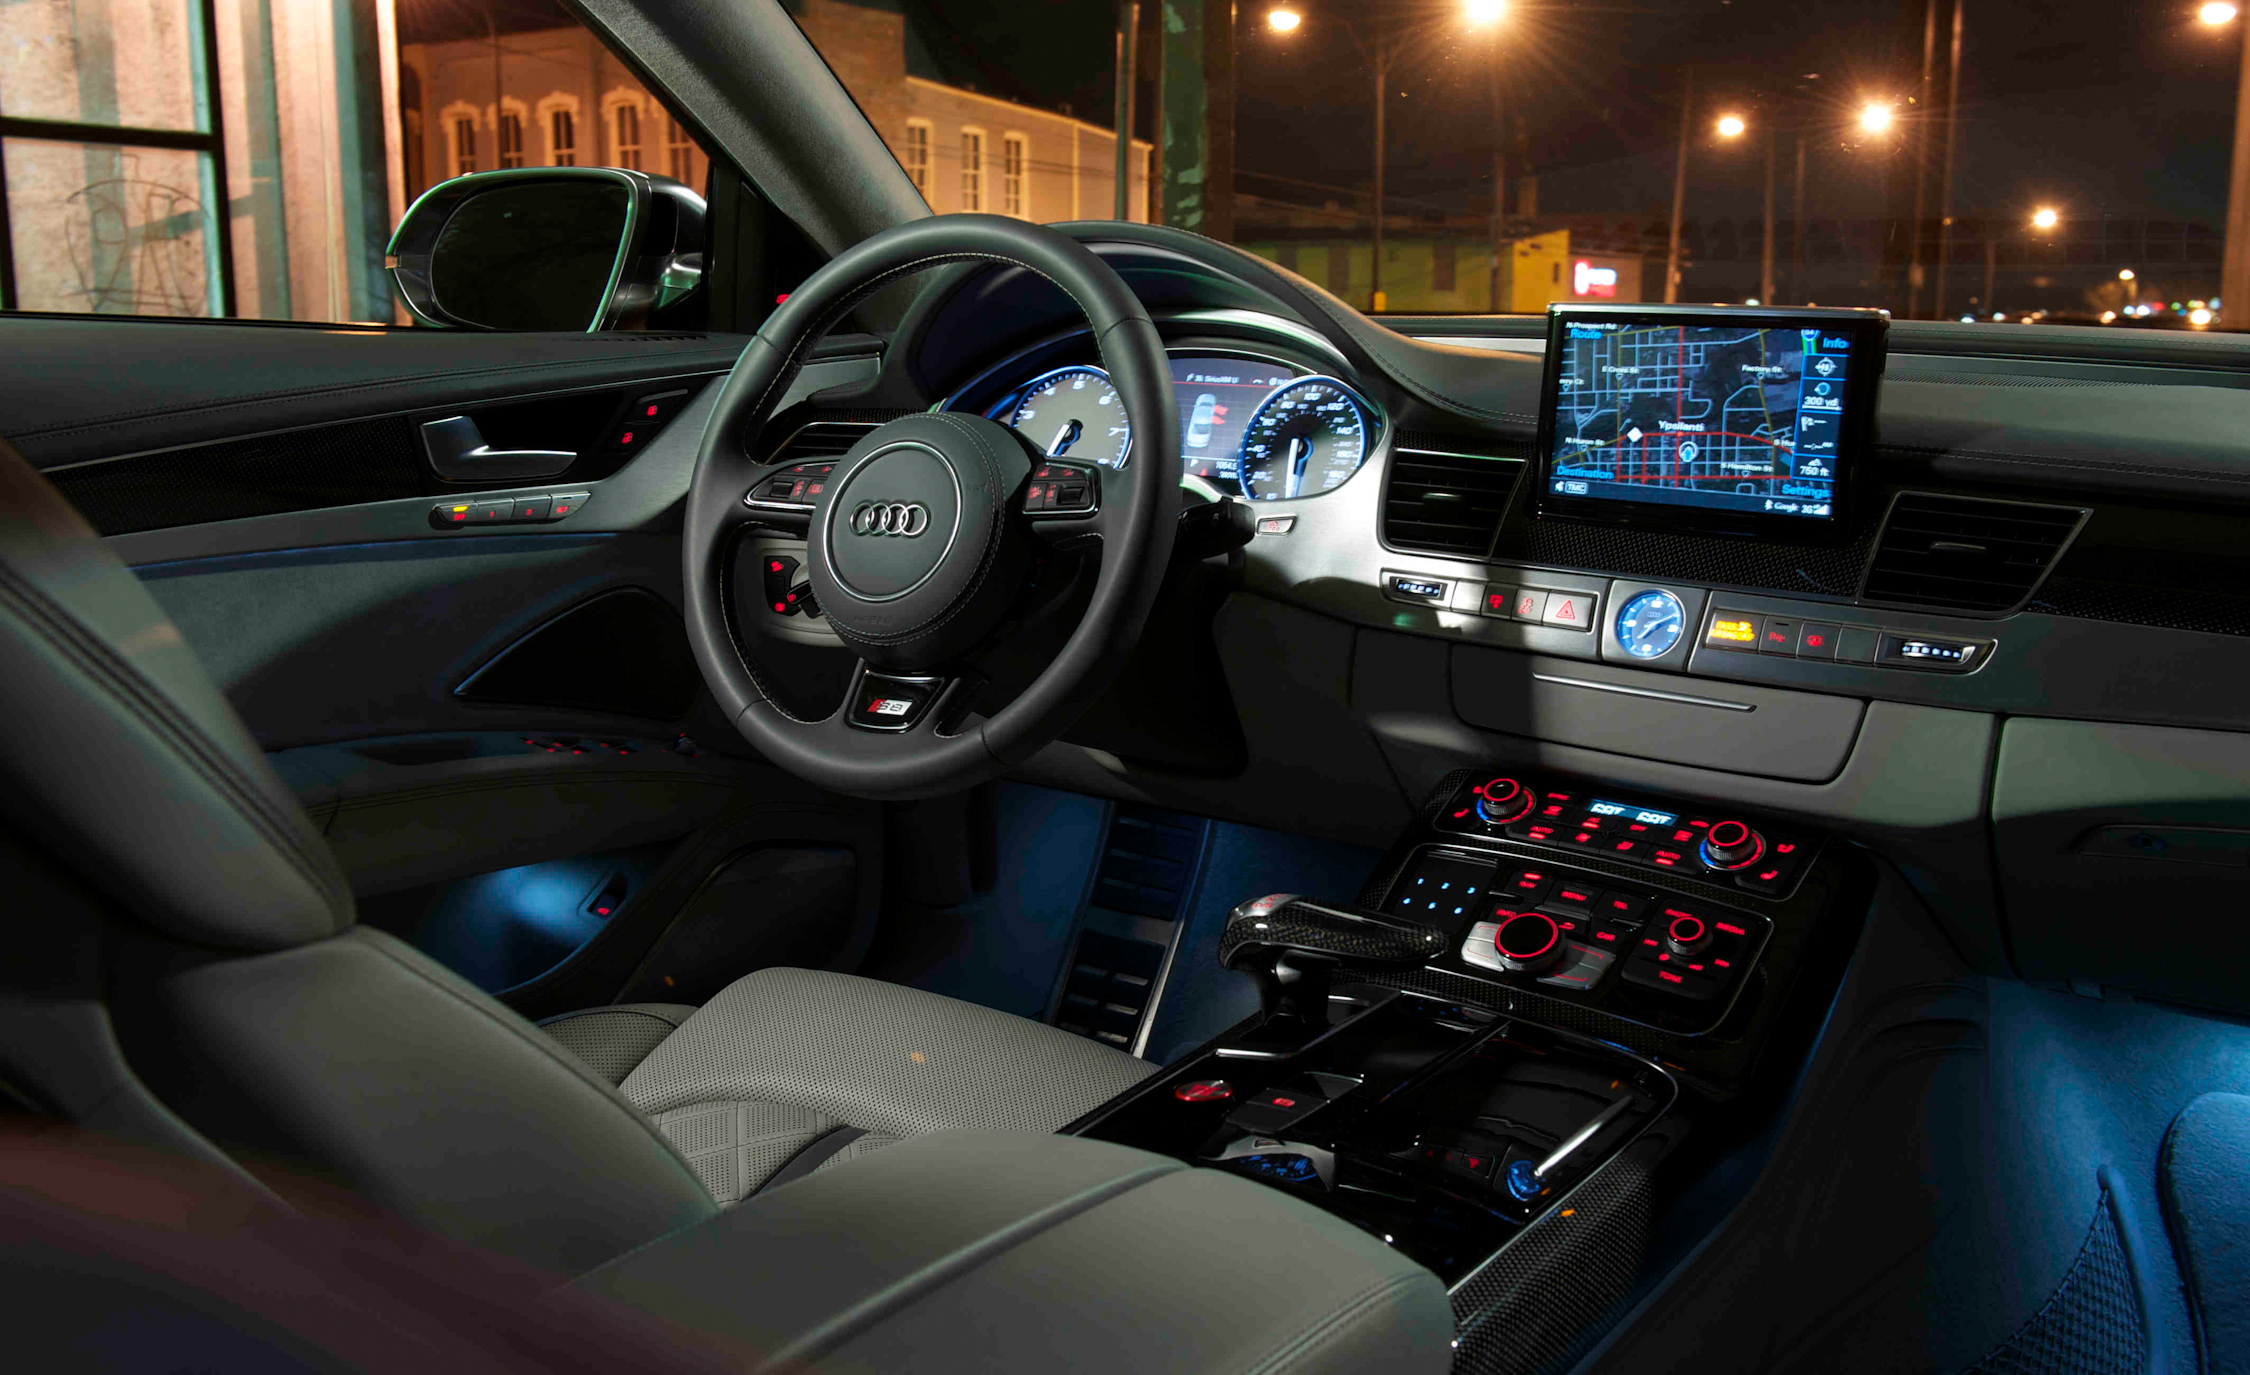 2013 Audi S8 Interior Driver Steering And Dash (Photo 15 of 25)